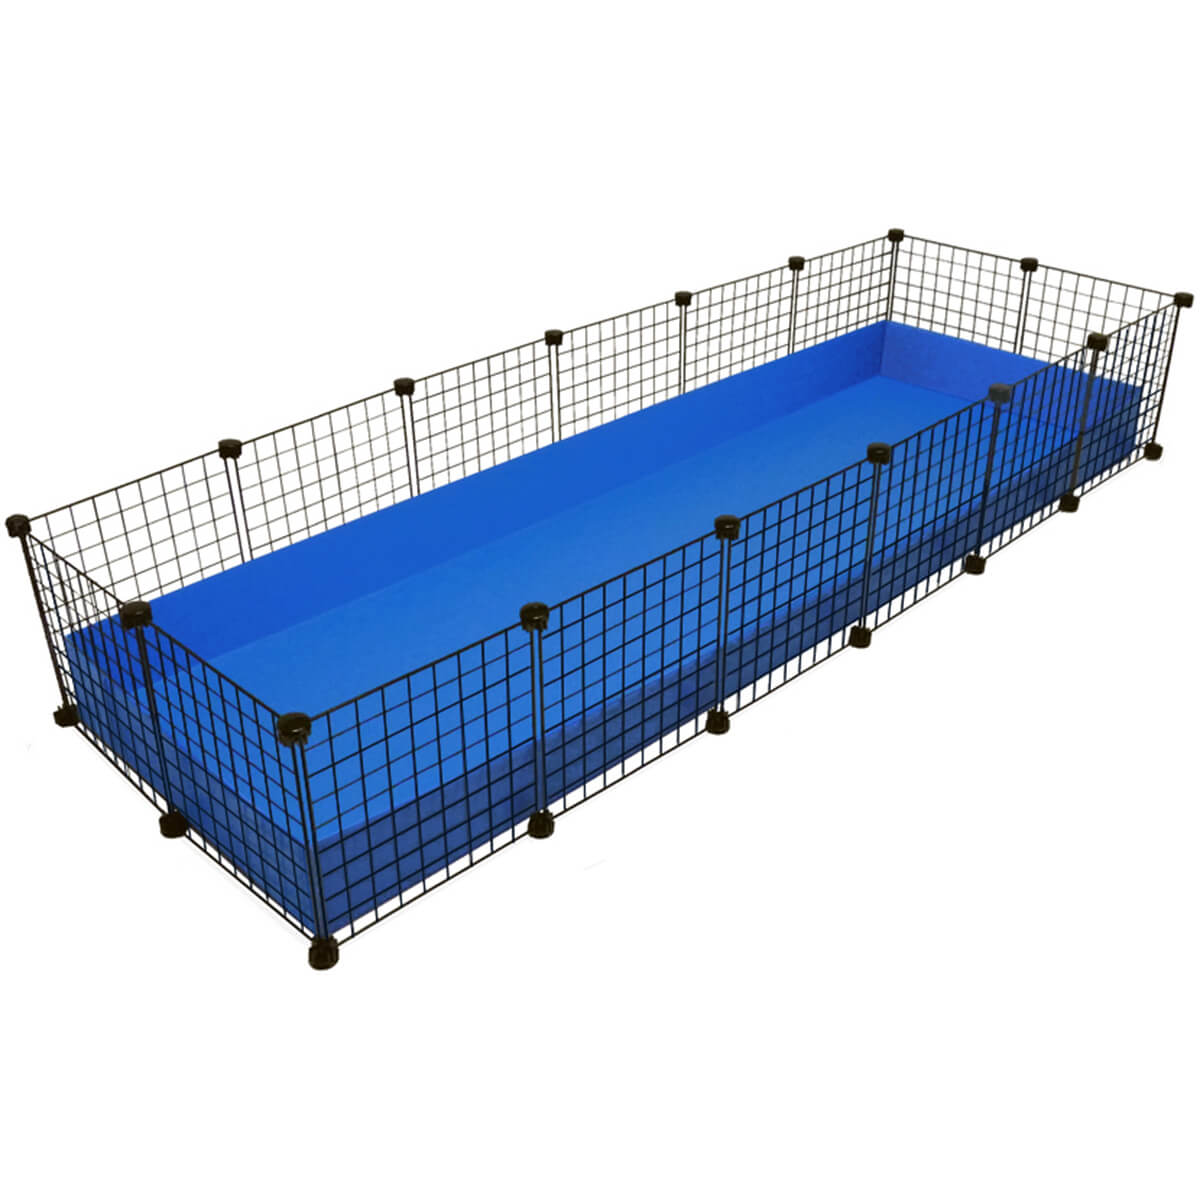 Jumbo (2x6 grids) C&C Guinea Pig Cage by Cagetopia